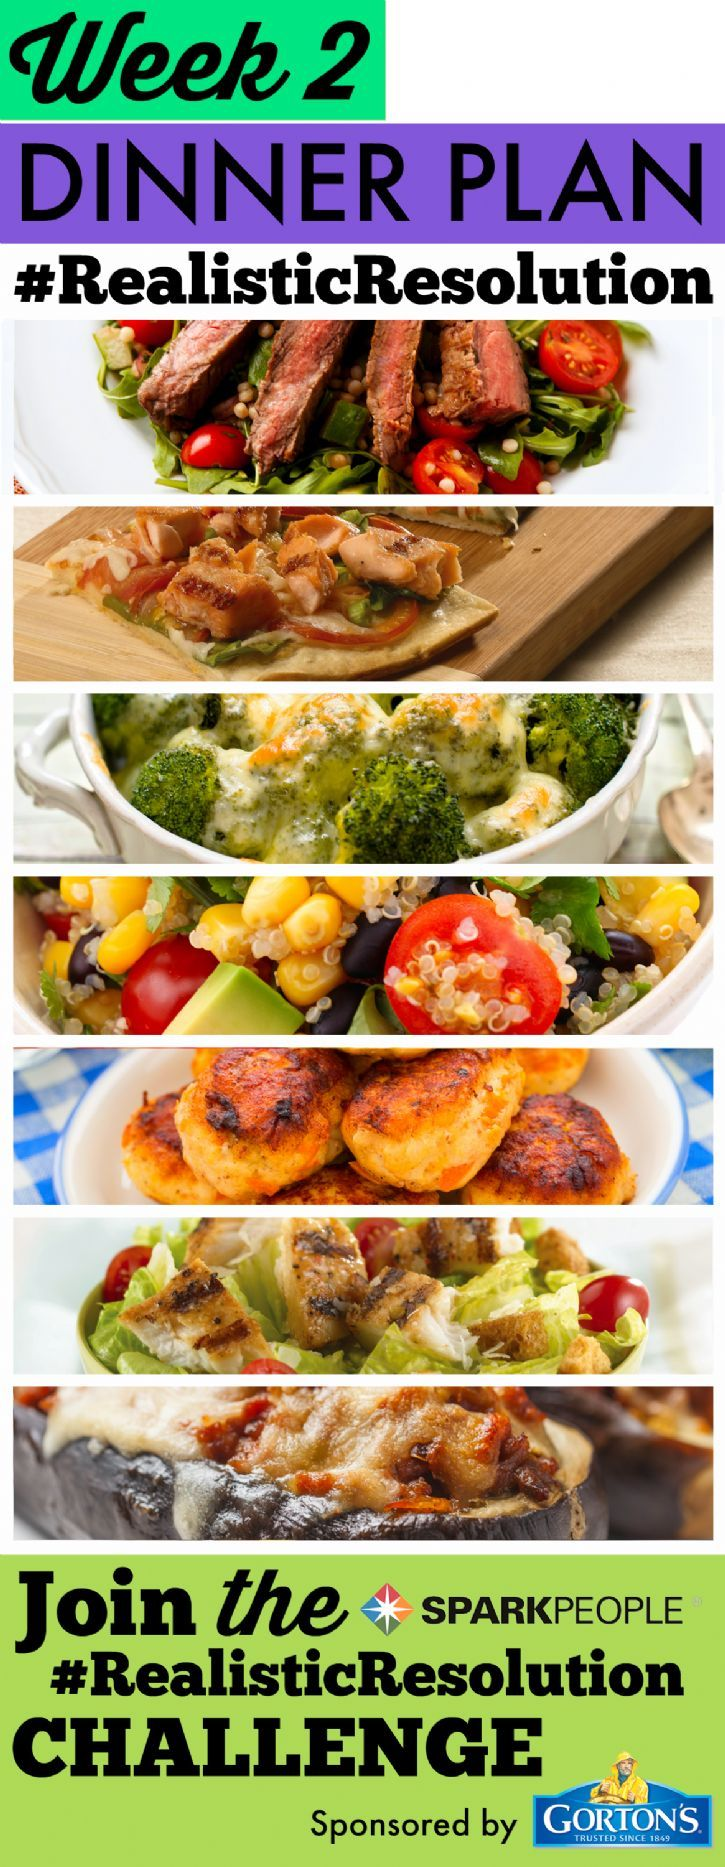 30 Days of Meals for a New You in the New Year | SparkPeople